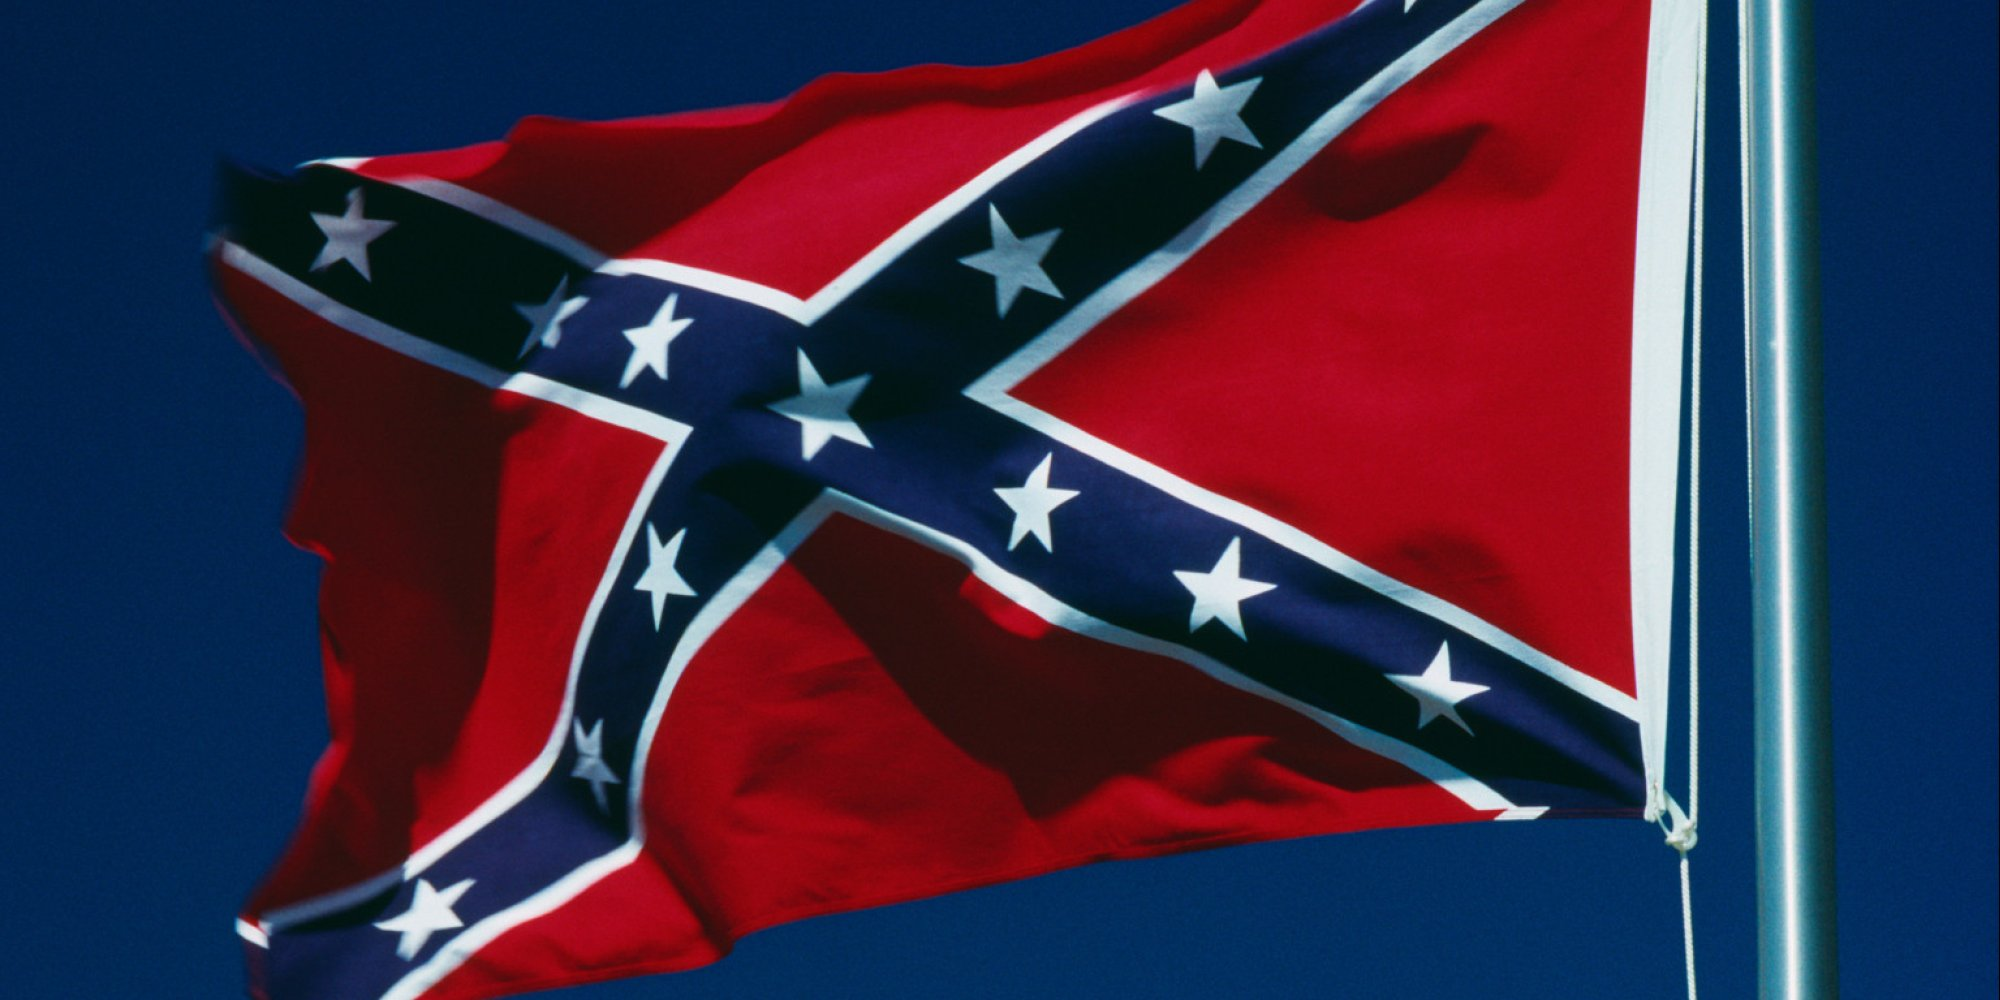 No you need a history lesson the confederate flag is a symbol of hate huffpost